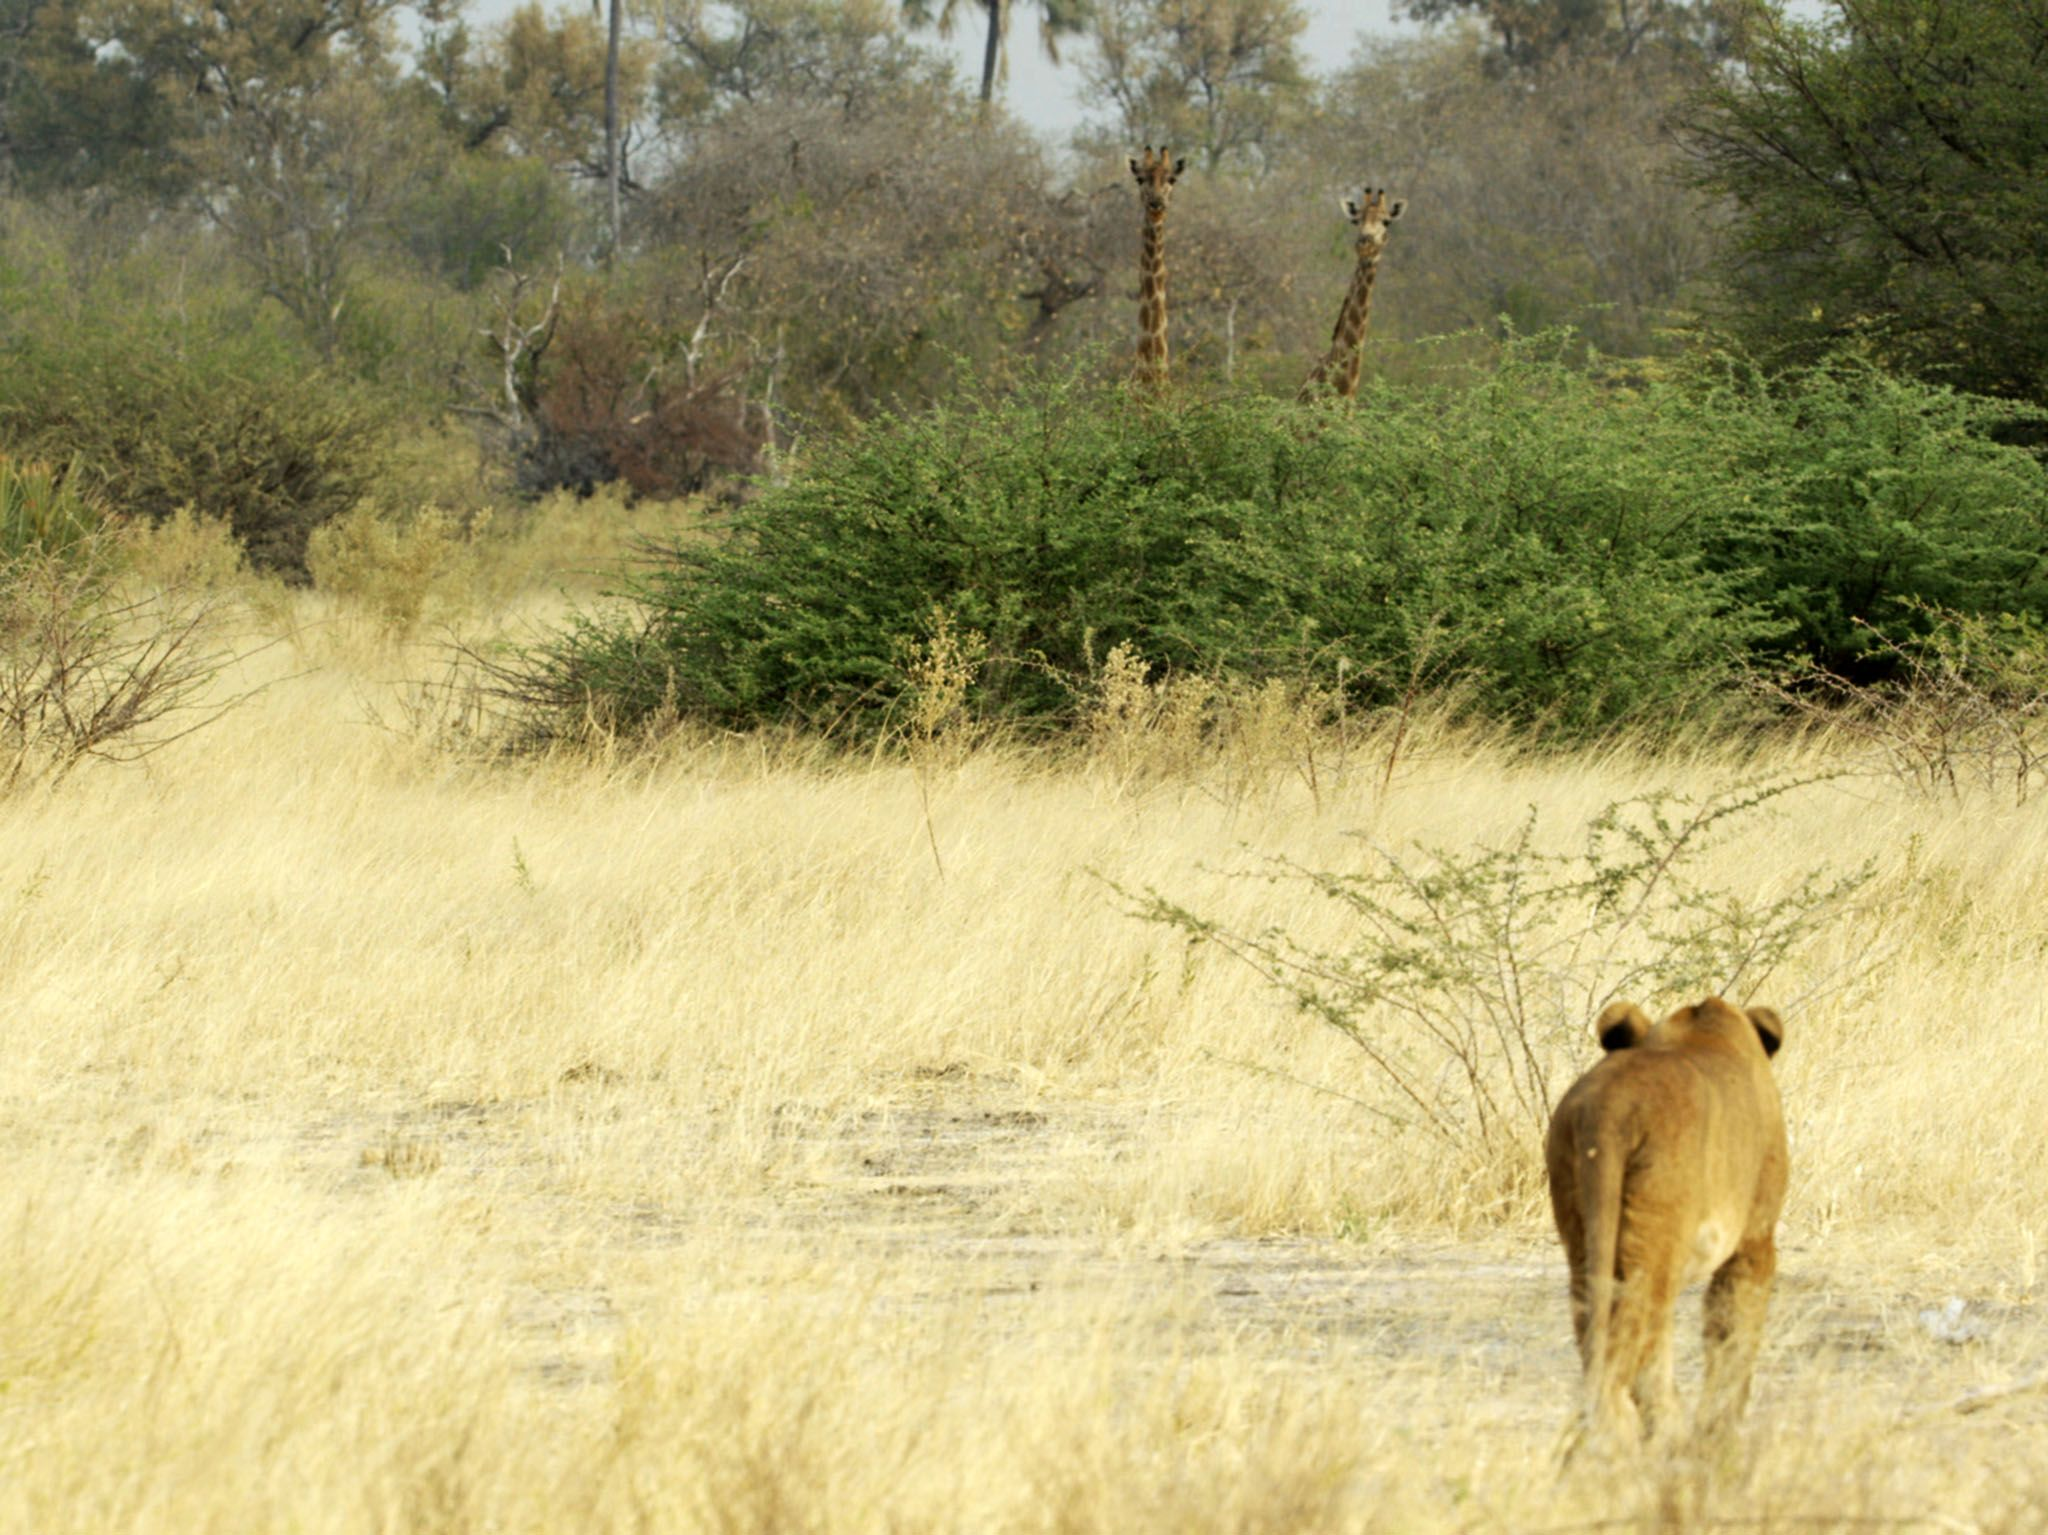 Moremi Game Reserve, Botswana:  Two giraffe onlookers spy on an encroaching lioness.  This image... [Photo of the day - March 2020]